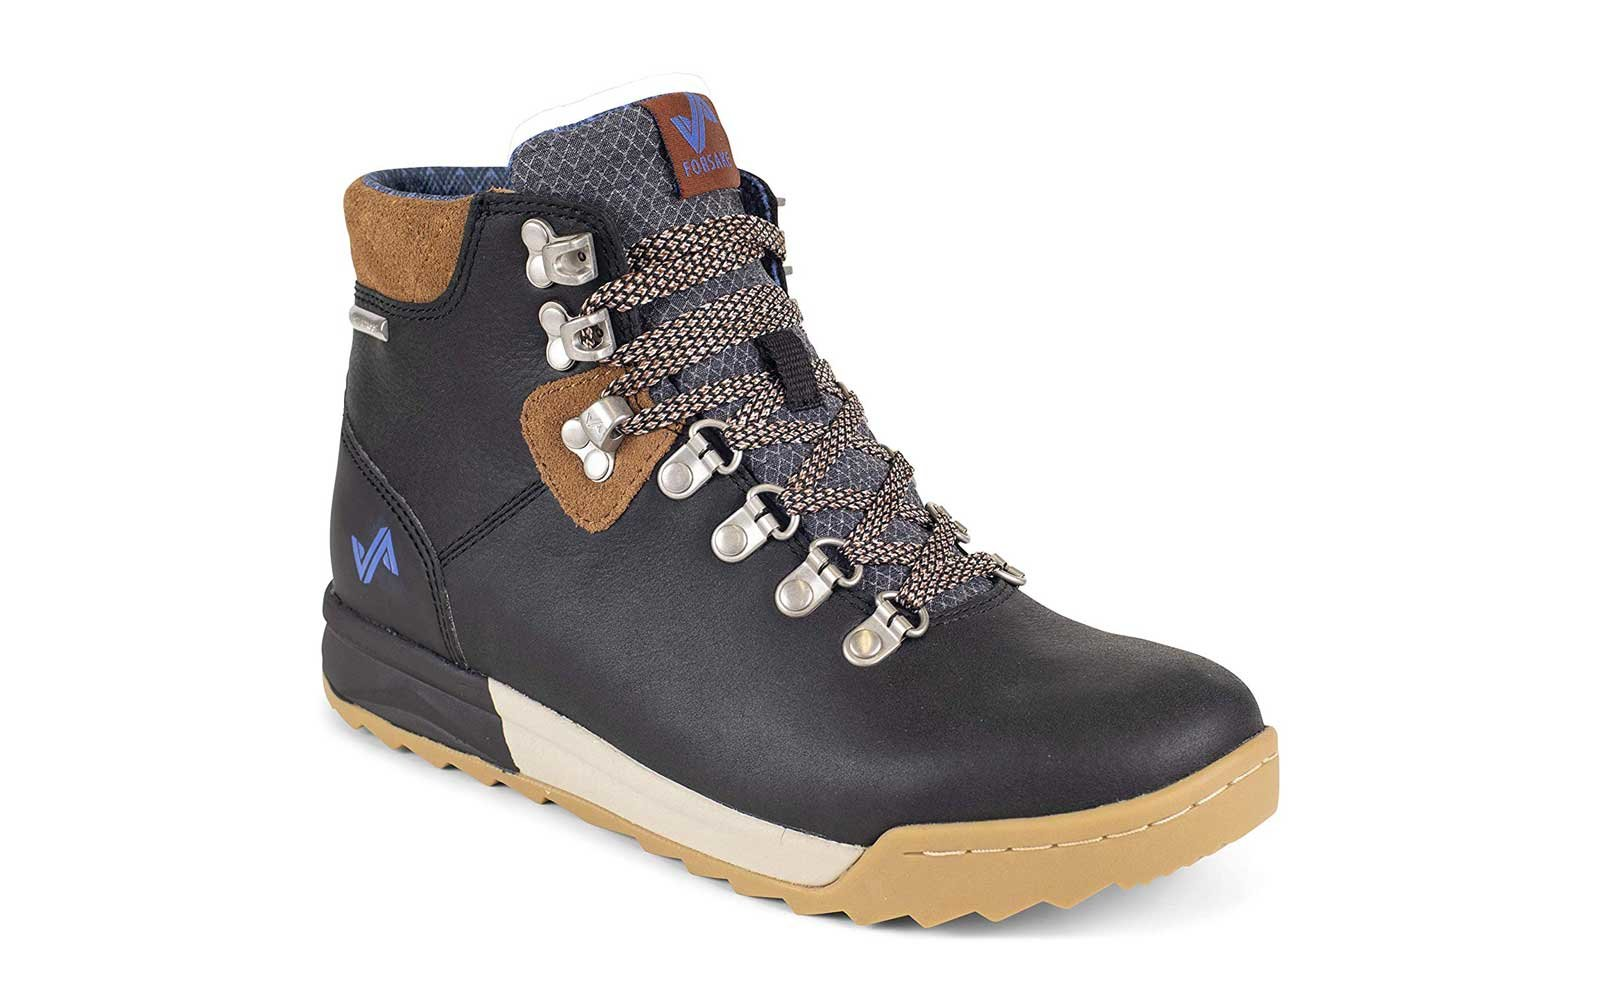 0ef59c7ecc8 11 Cute Hiking Boots to Take You From Trail to Town | Travel + Leisure